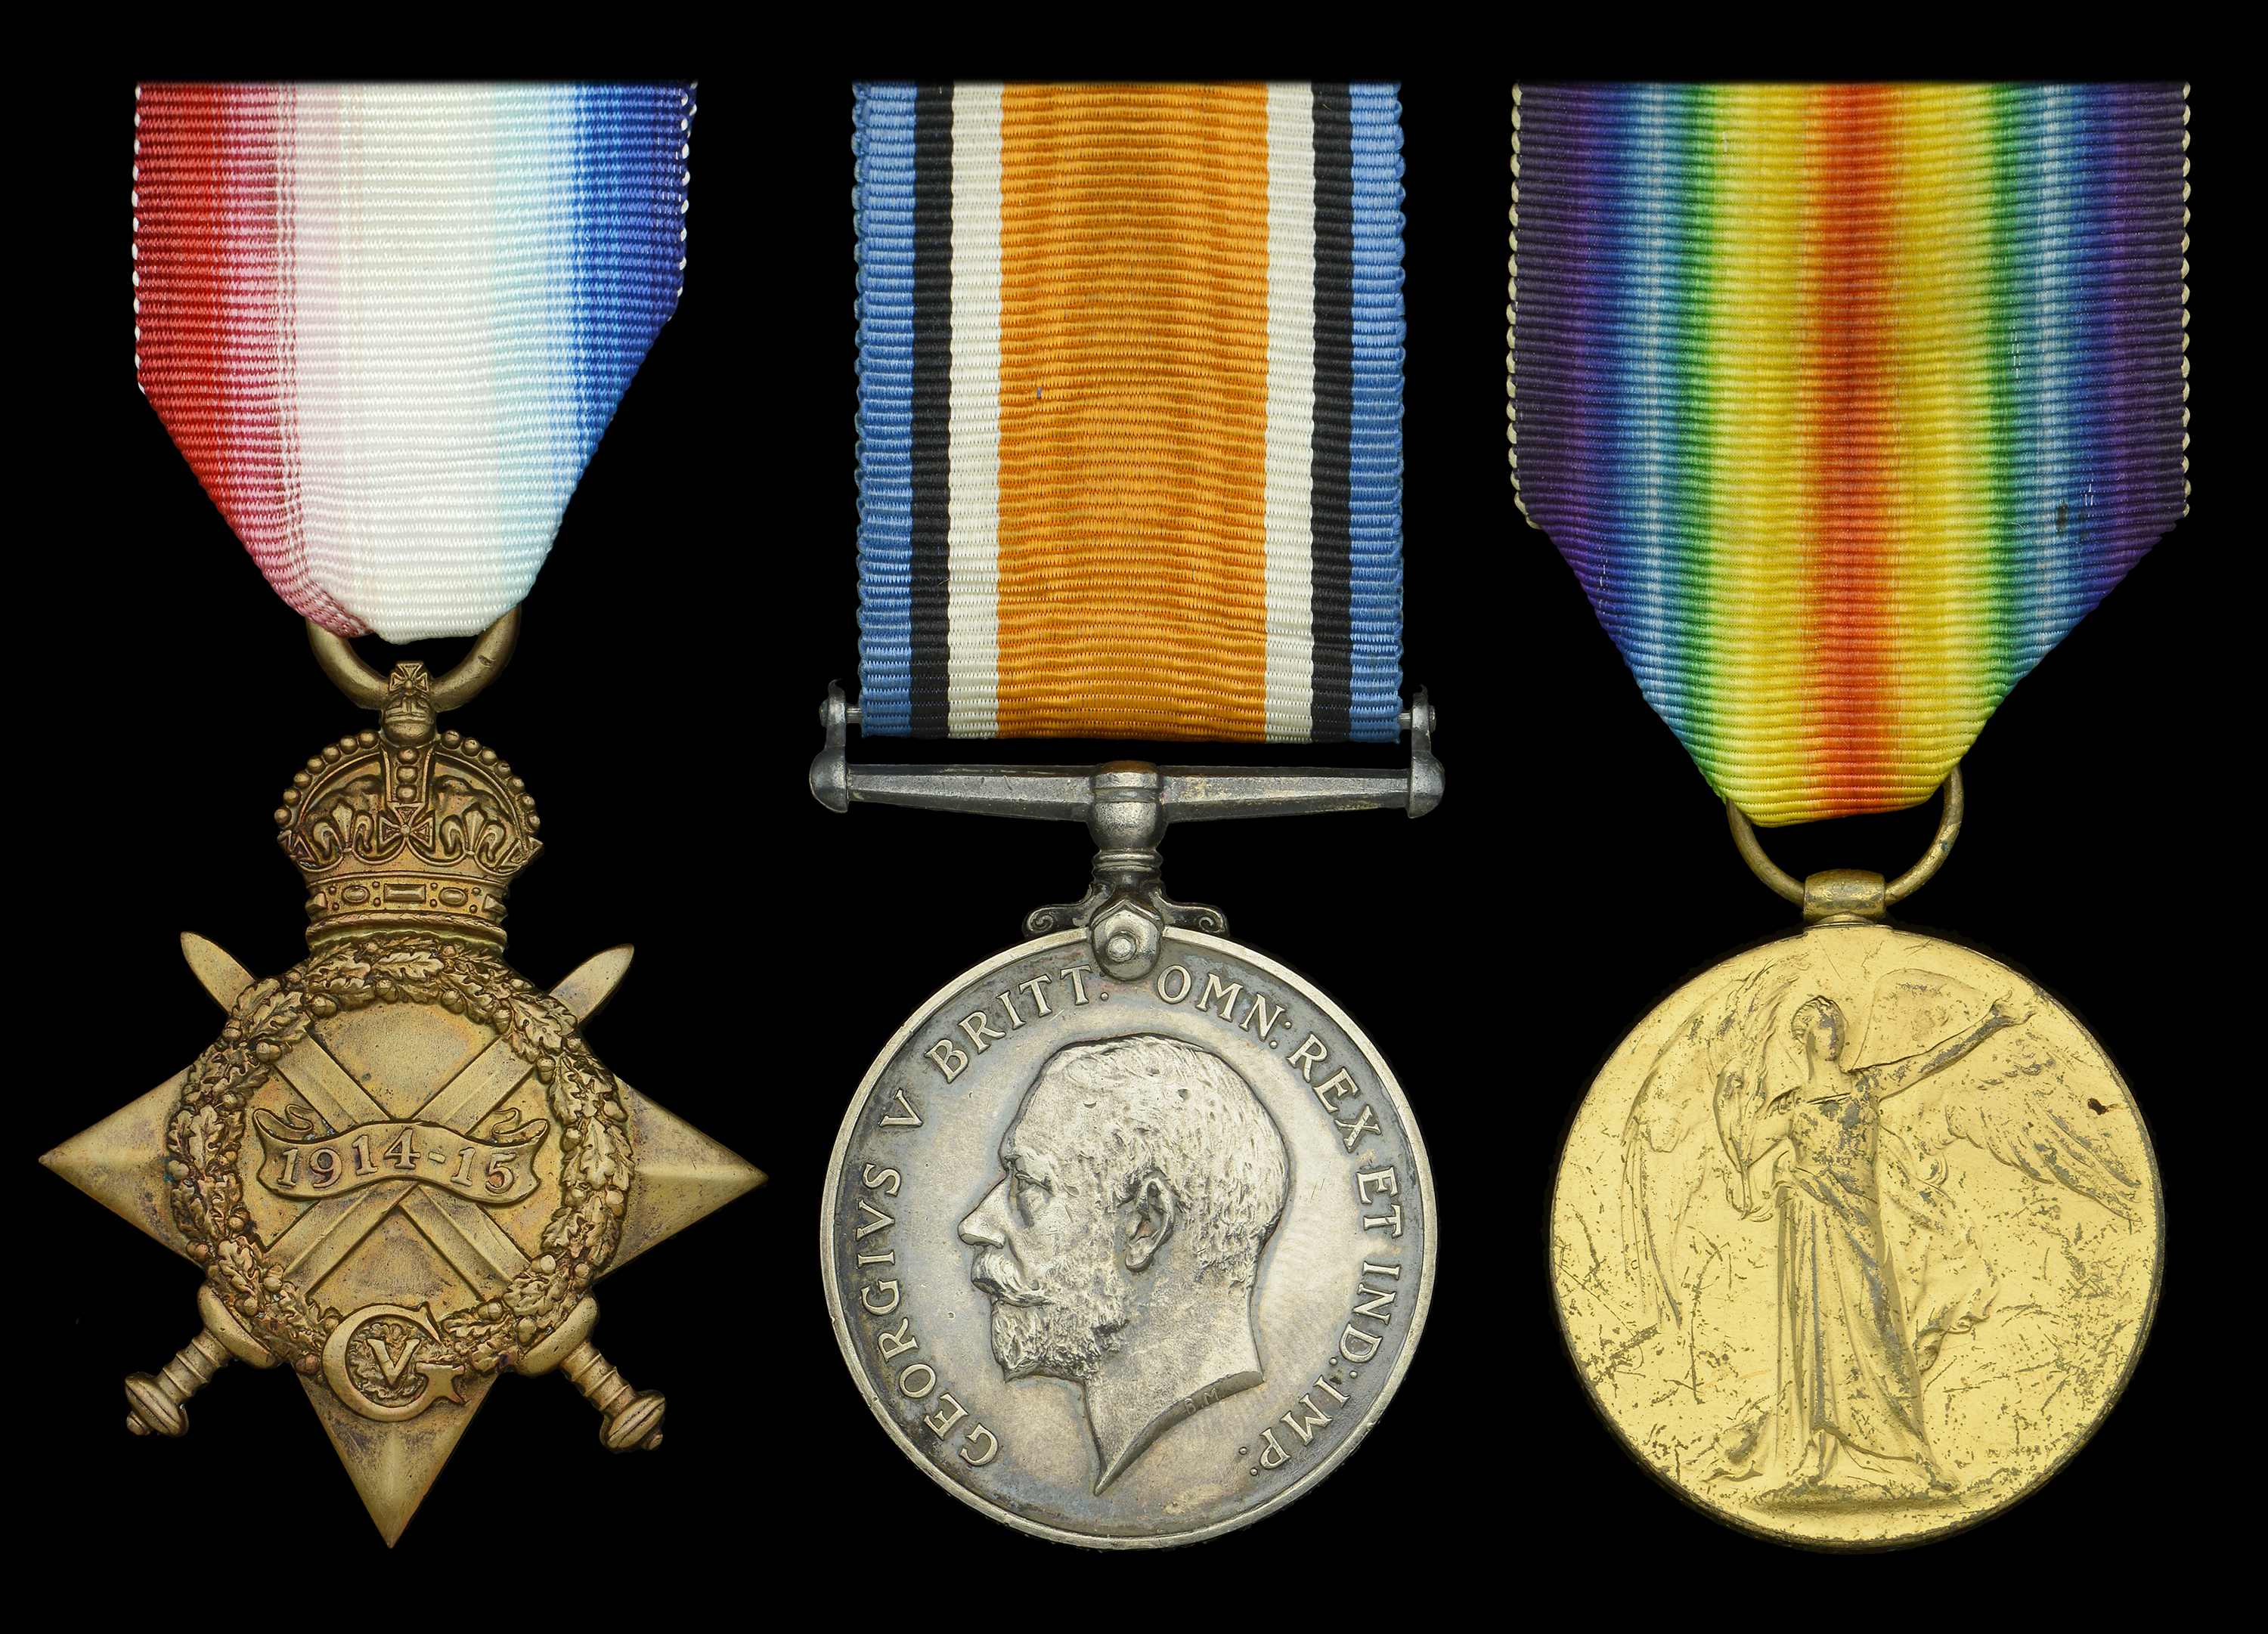 Medals from the Collection of the Soldiers of Oxfordshire Museum, Part 4